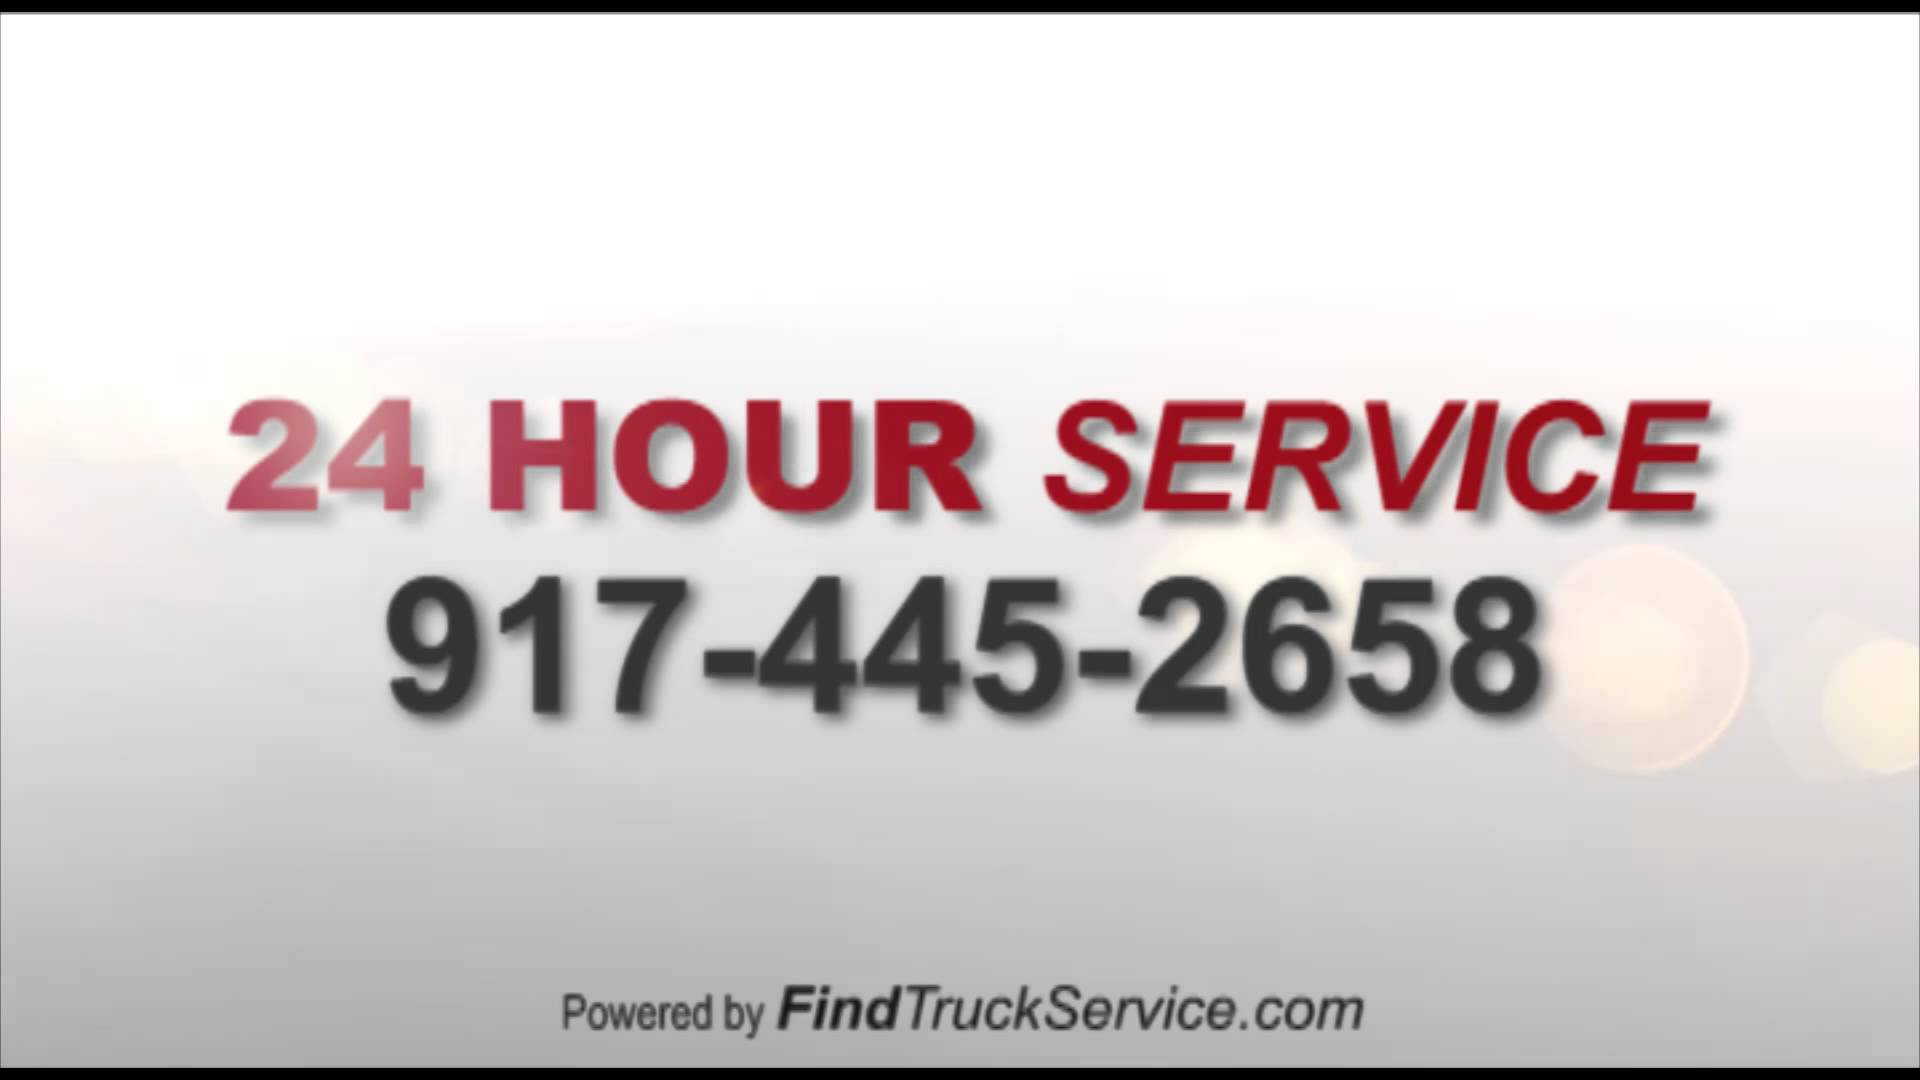 Onsite Truck & Tire Repair Service in Bronx, NY | 24 Hour Find Truck Service